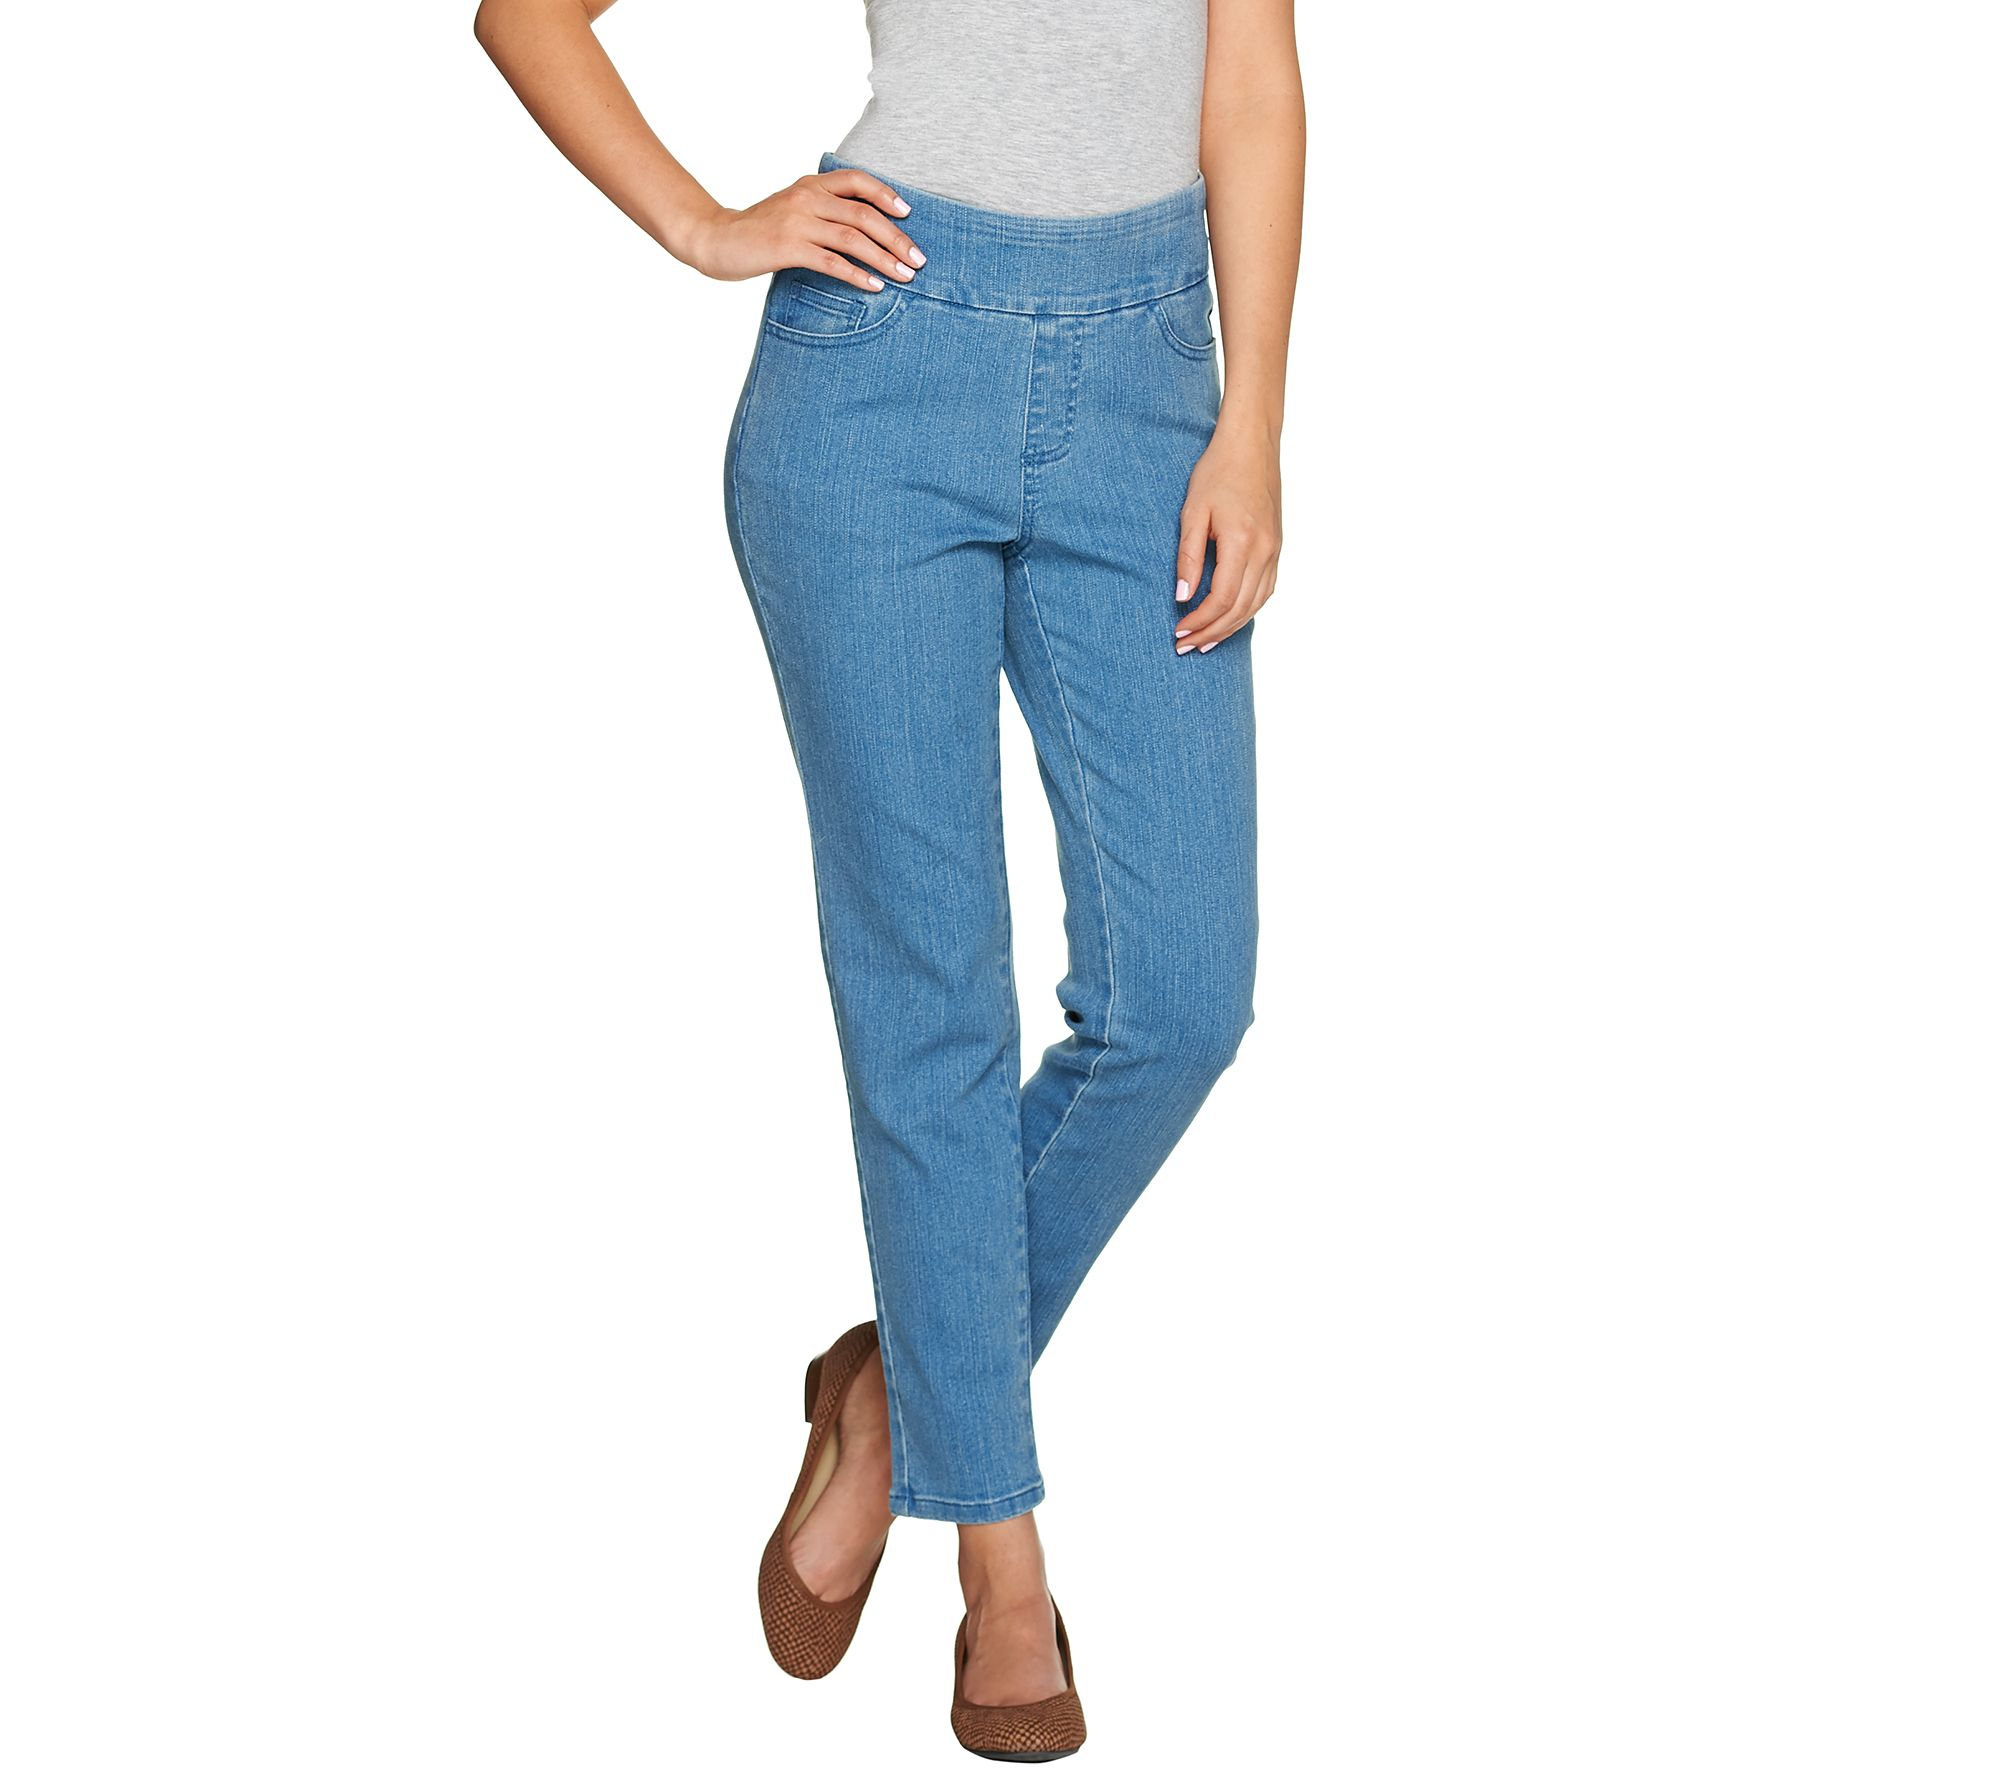 Denim Amp Co Quot How Smooth Quot Denim Regular Ankle Jeans Page